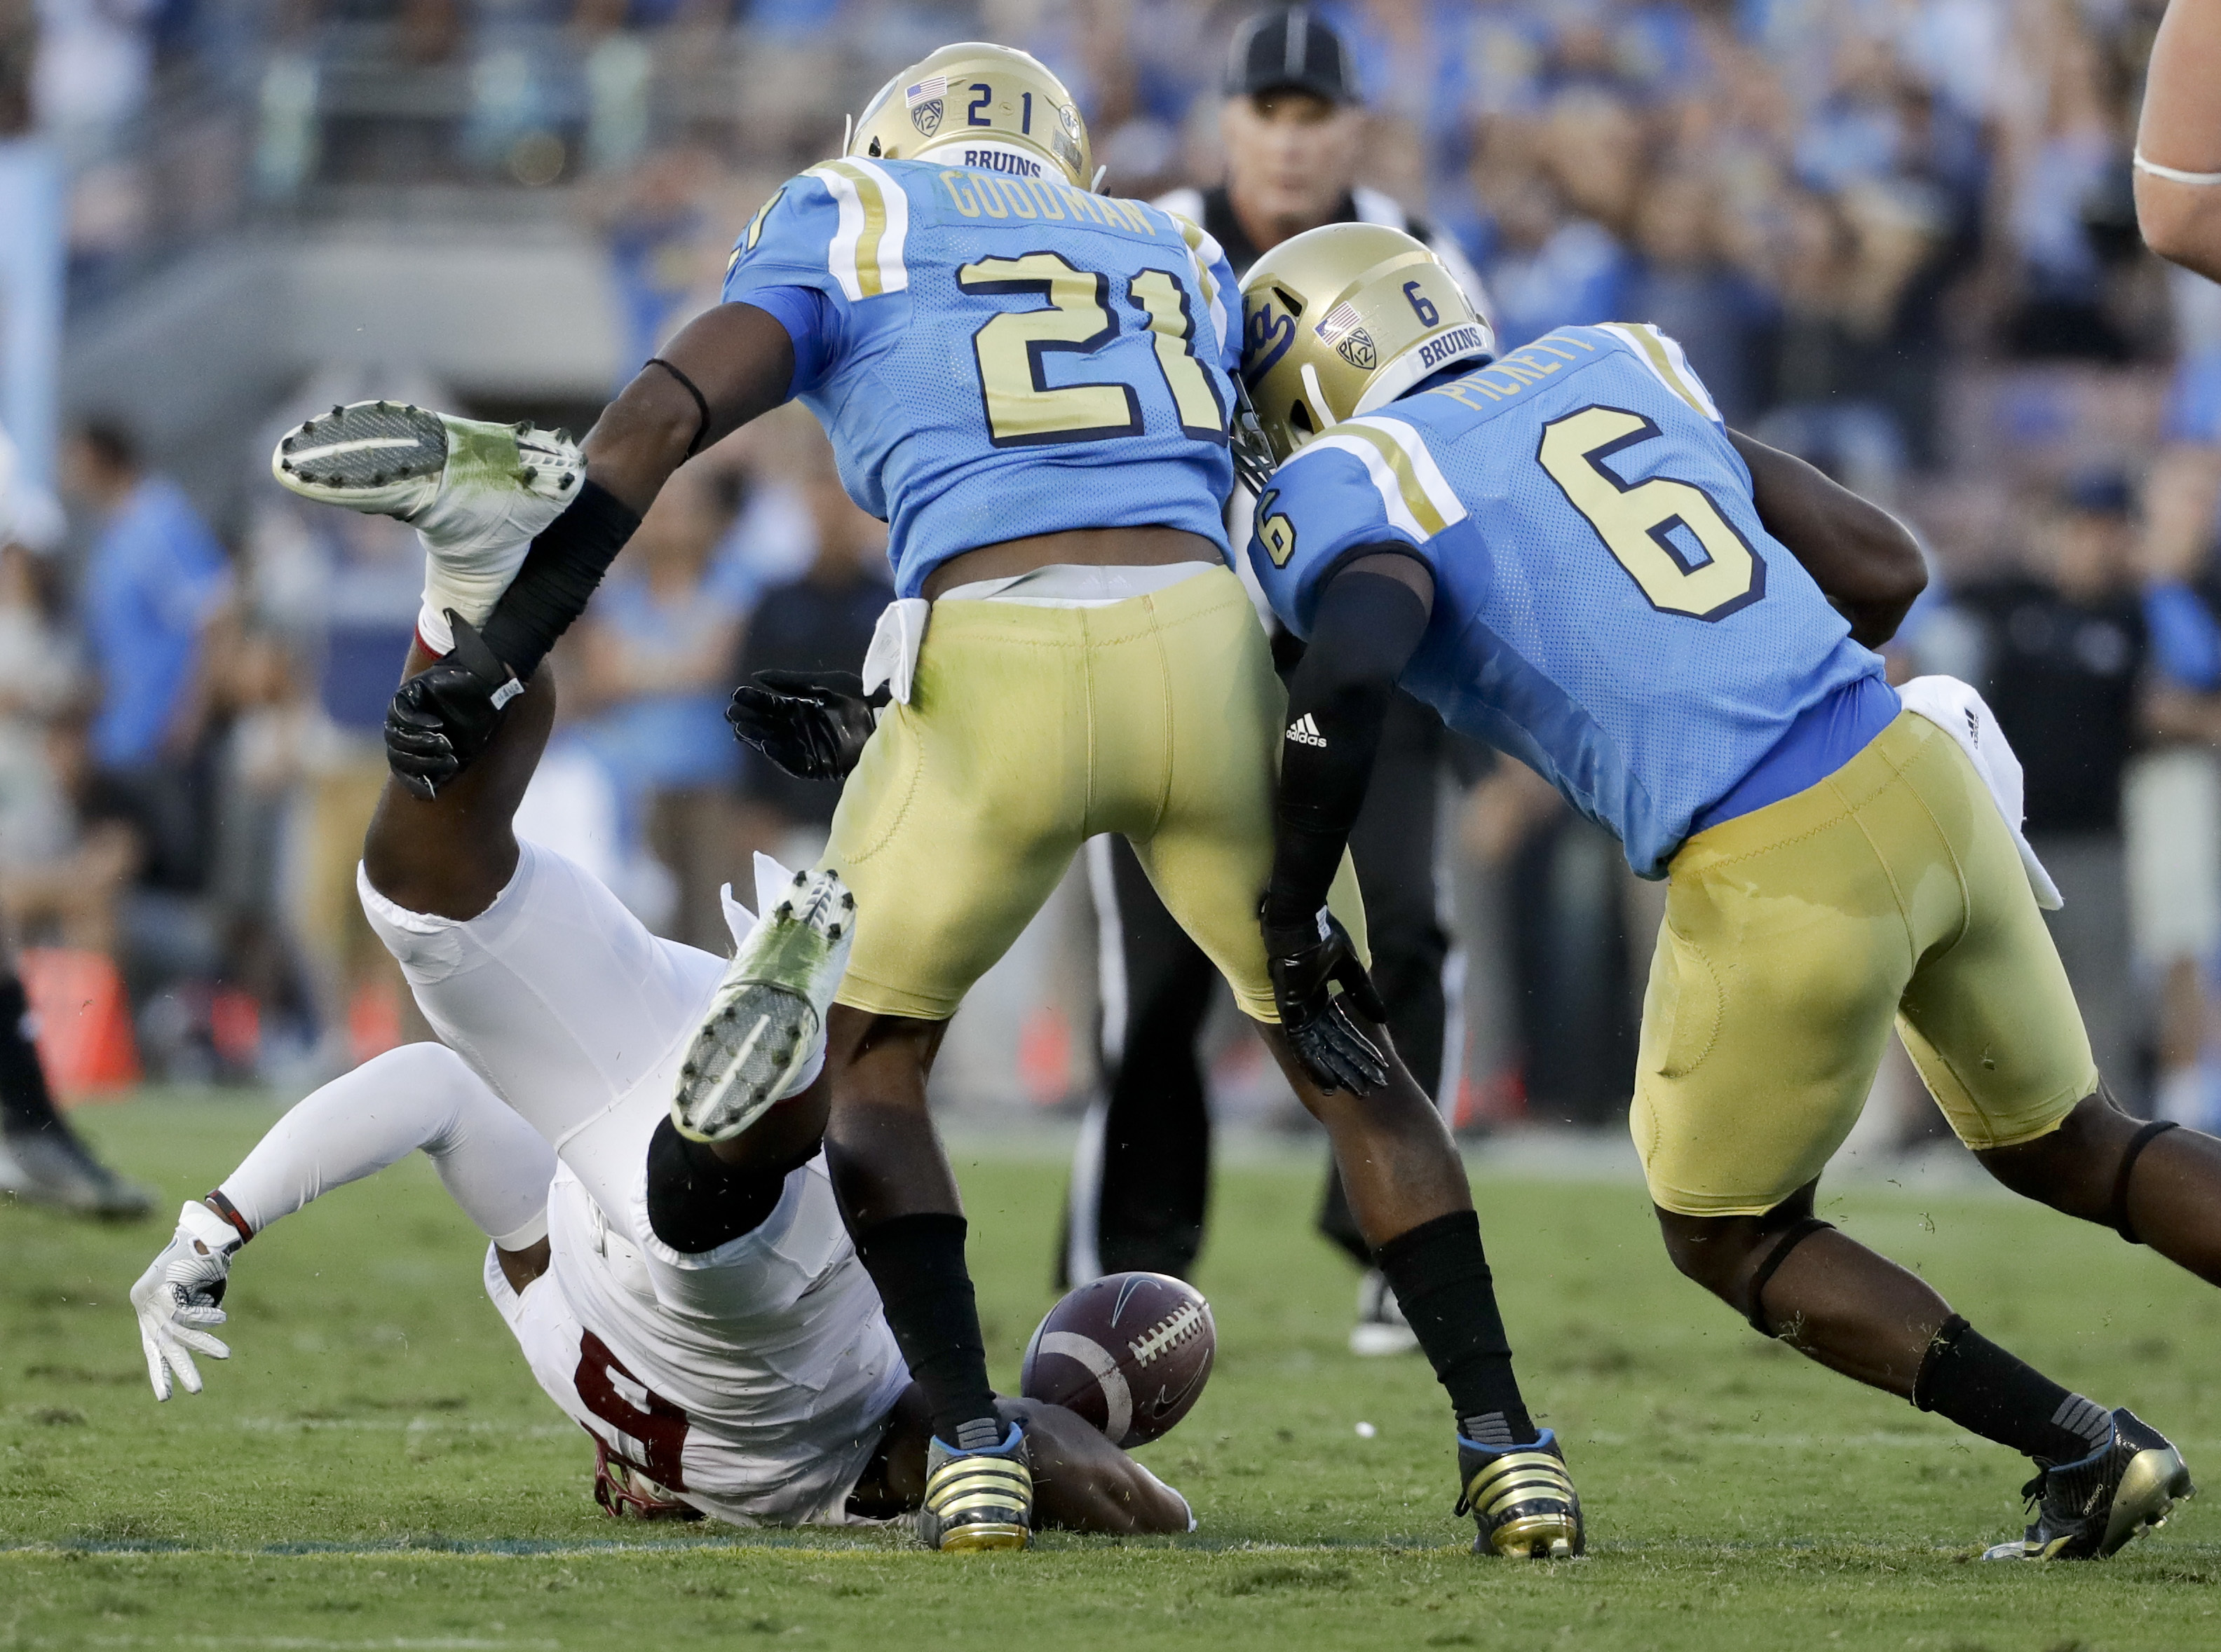 UCLA defensive back Adarius Pickett, right, and defensive back Tahaan Goodman, force a fumble by Stanford wide receiver Francis Owusu during the first half of an NCAA college football game in Pasadena, Calif., Saturday, Sept. 24, 2016. Owusu was injured o